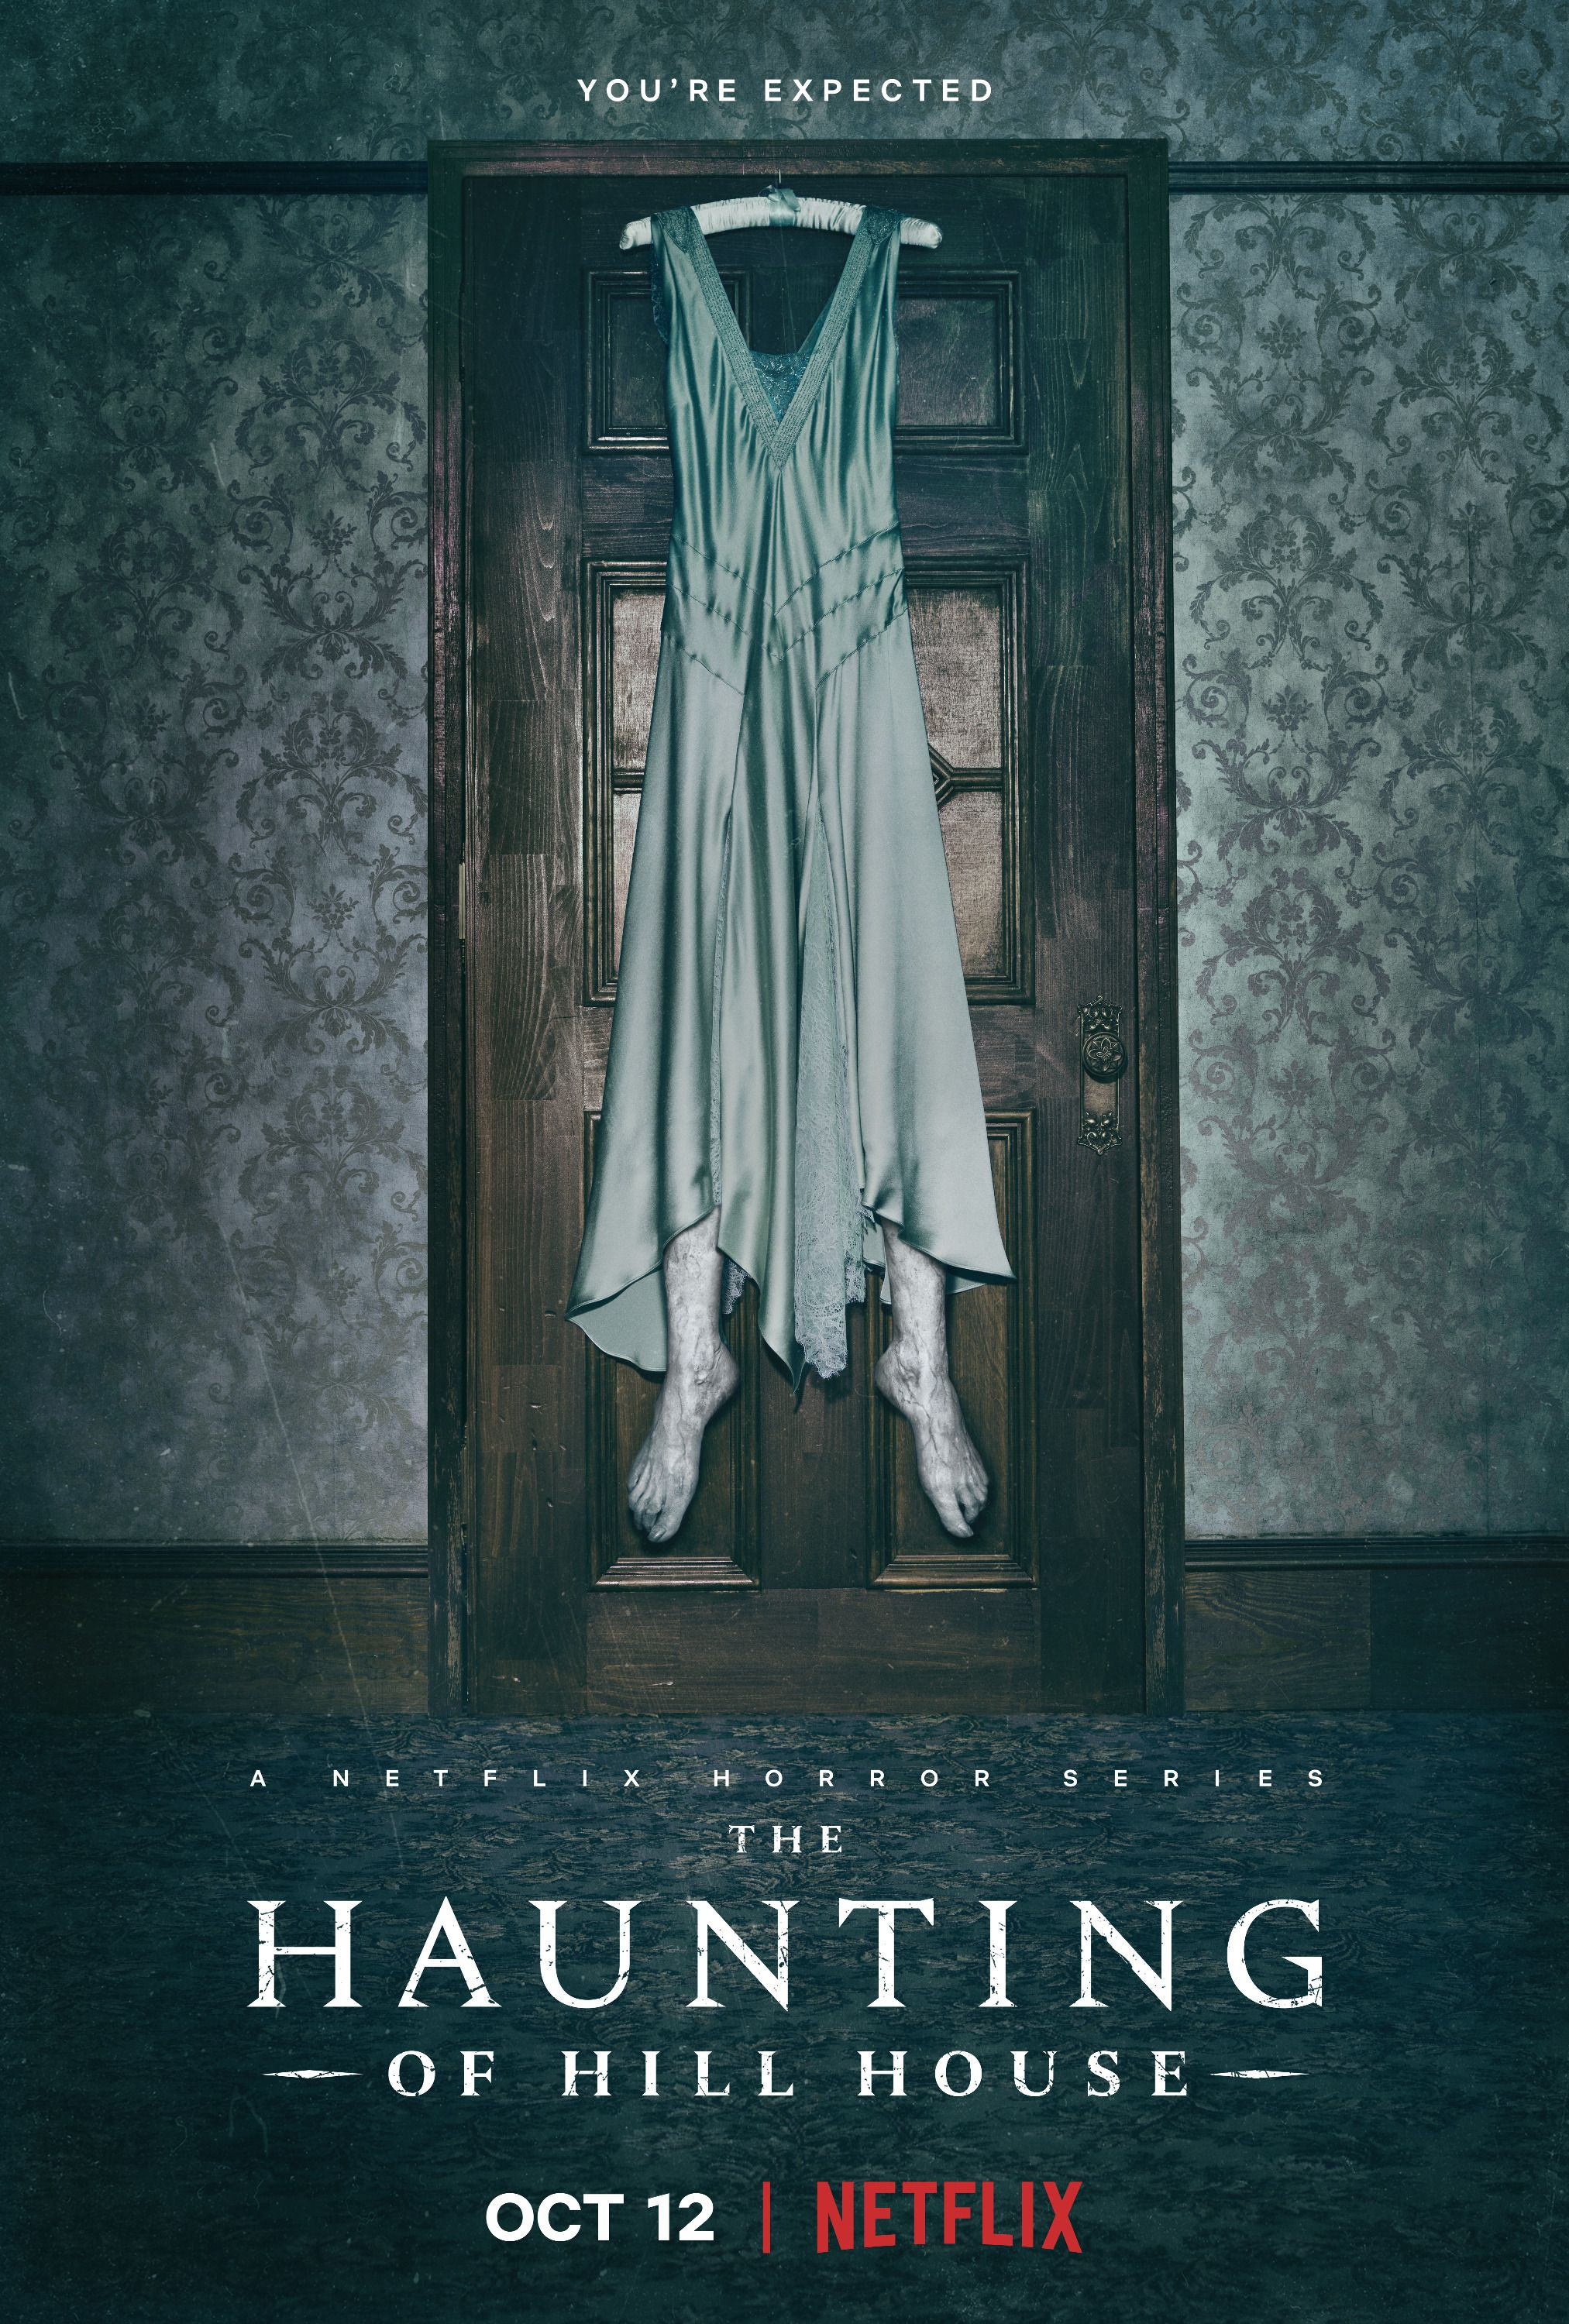 Swell The Haunting Of Hill House The Netflix Horror Series Is Download Free Architecture Designs Scobabritishbridgeorg